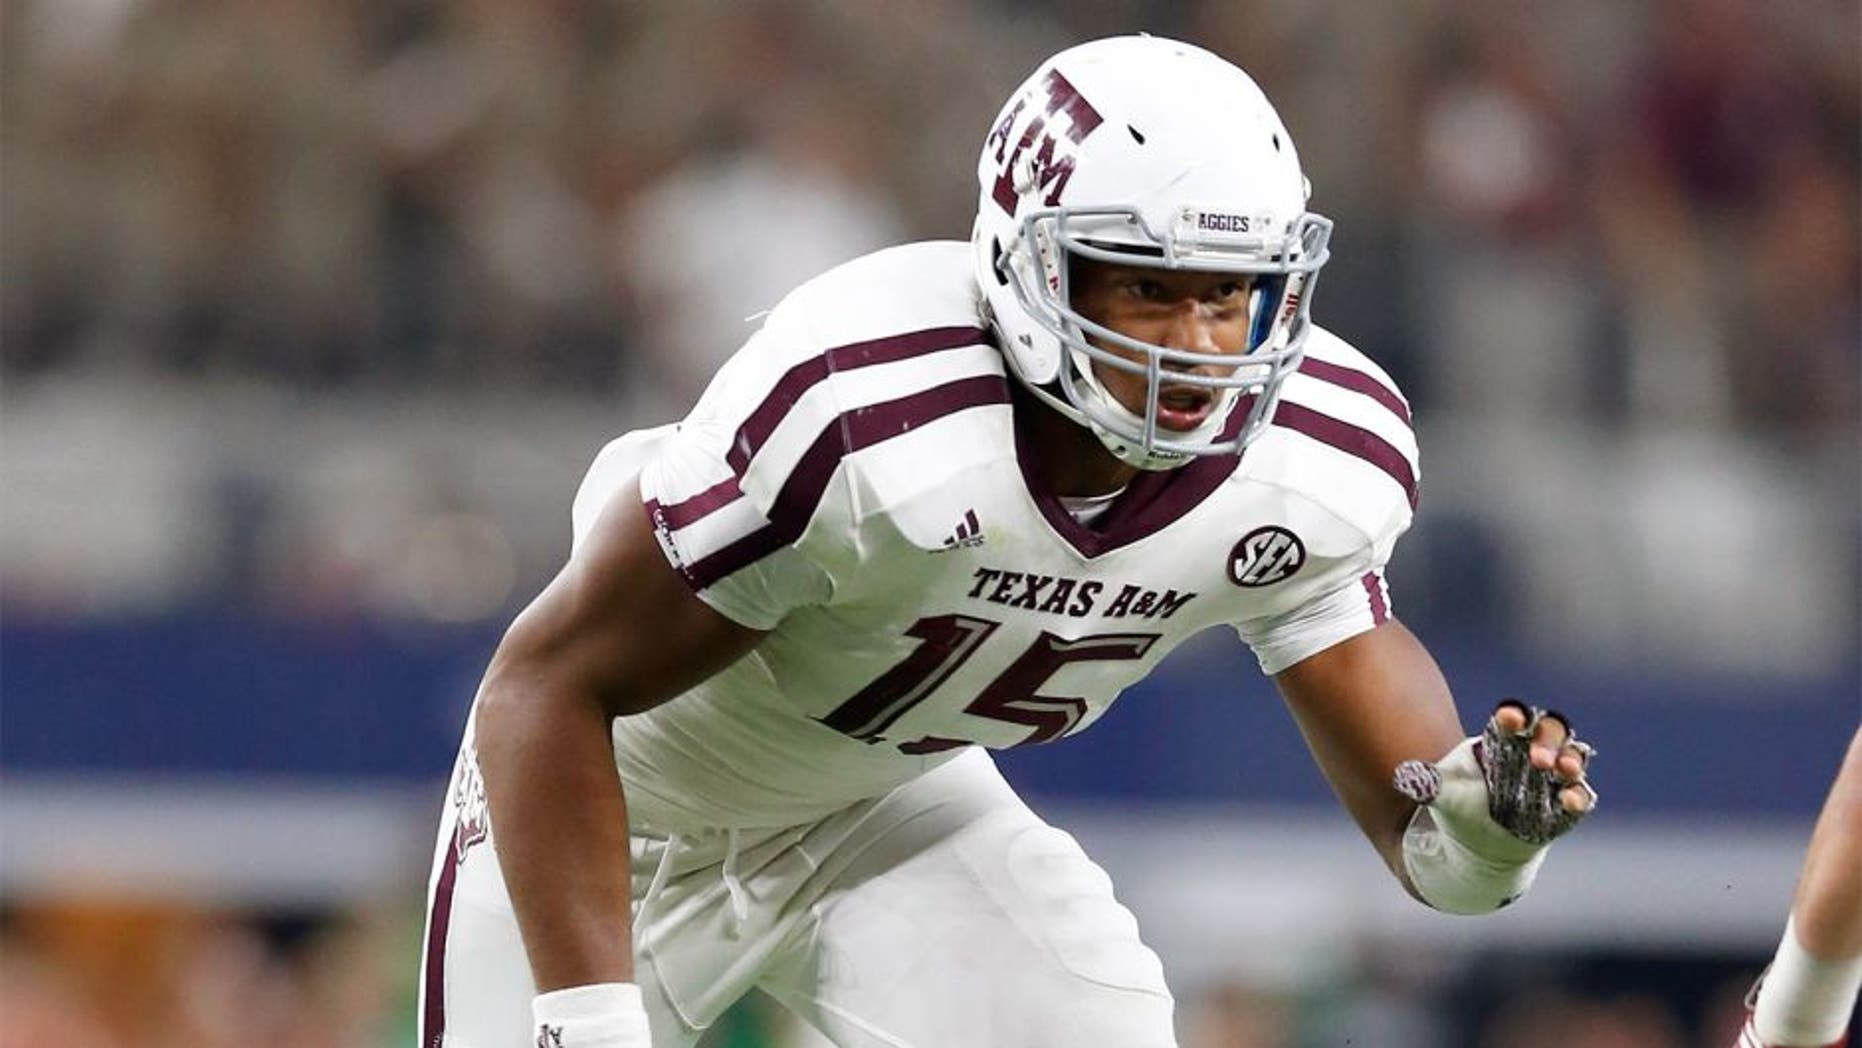 Sep 26, 2015; Arlington, TX, USA; Texas A&M Aggies defensive lineman Myles Garrett (15) in action against the Arkansas Razorbacks at AT&T Stadium. Mandatory Credit: Matthew Emmons-USA TODAY Sports